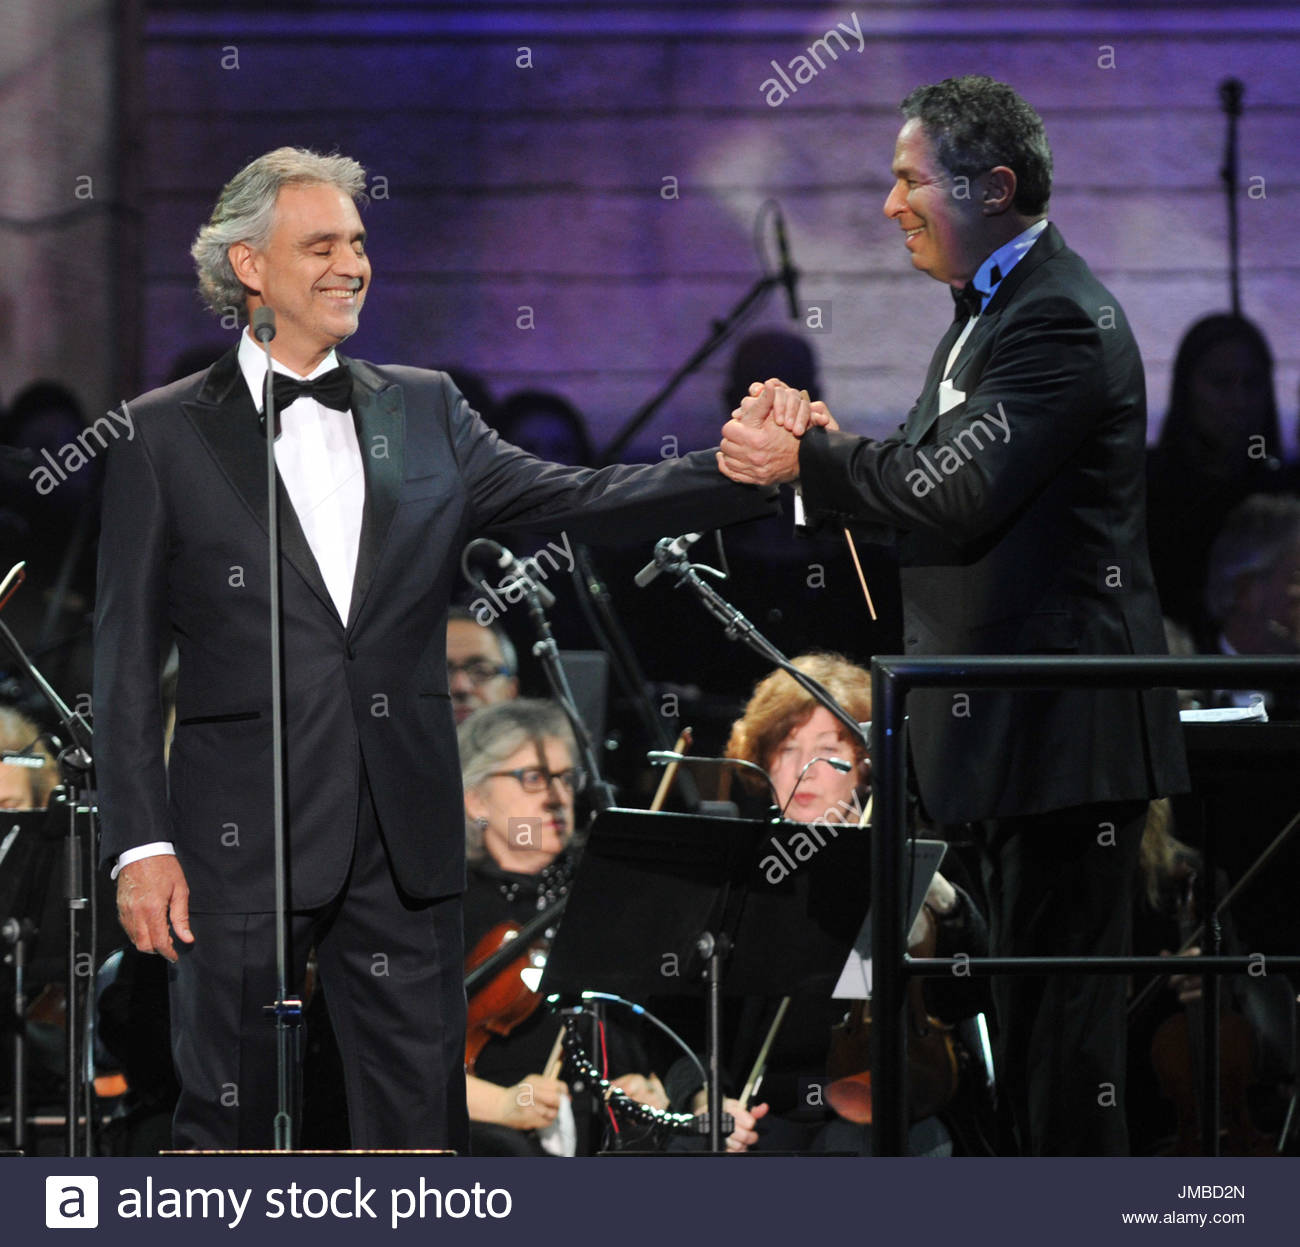 Andrea Bocelli, Eugene Kohn. Andrea Bocelli Performs In Concert At Madison  Square Garden On December 9, 2015 In New York City. Amazing Pictures